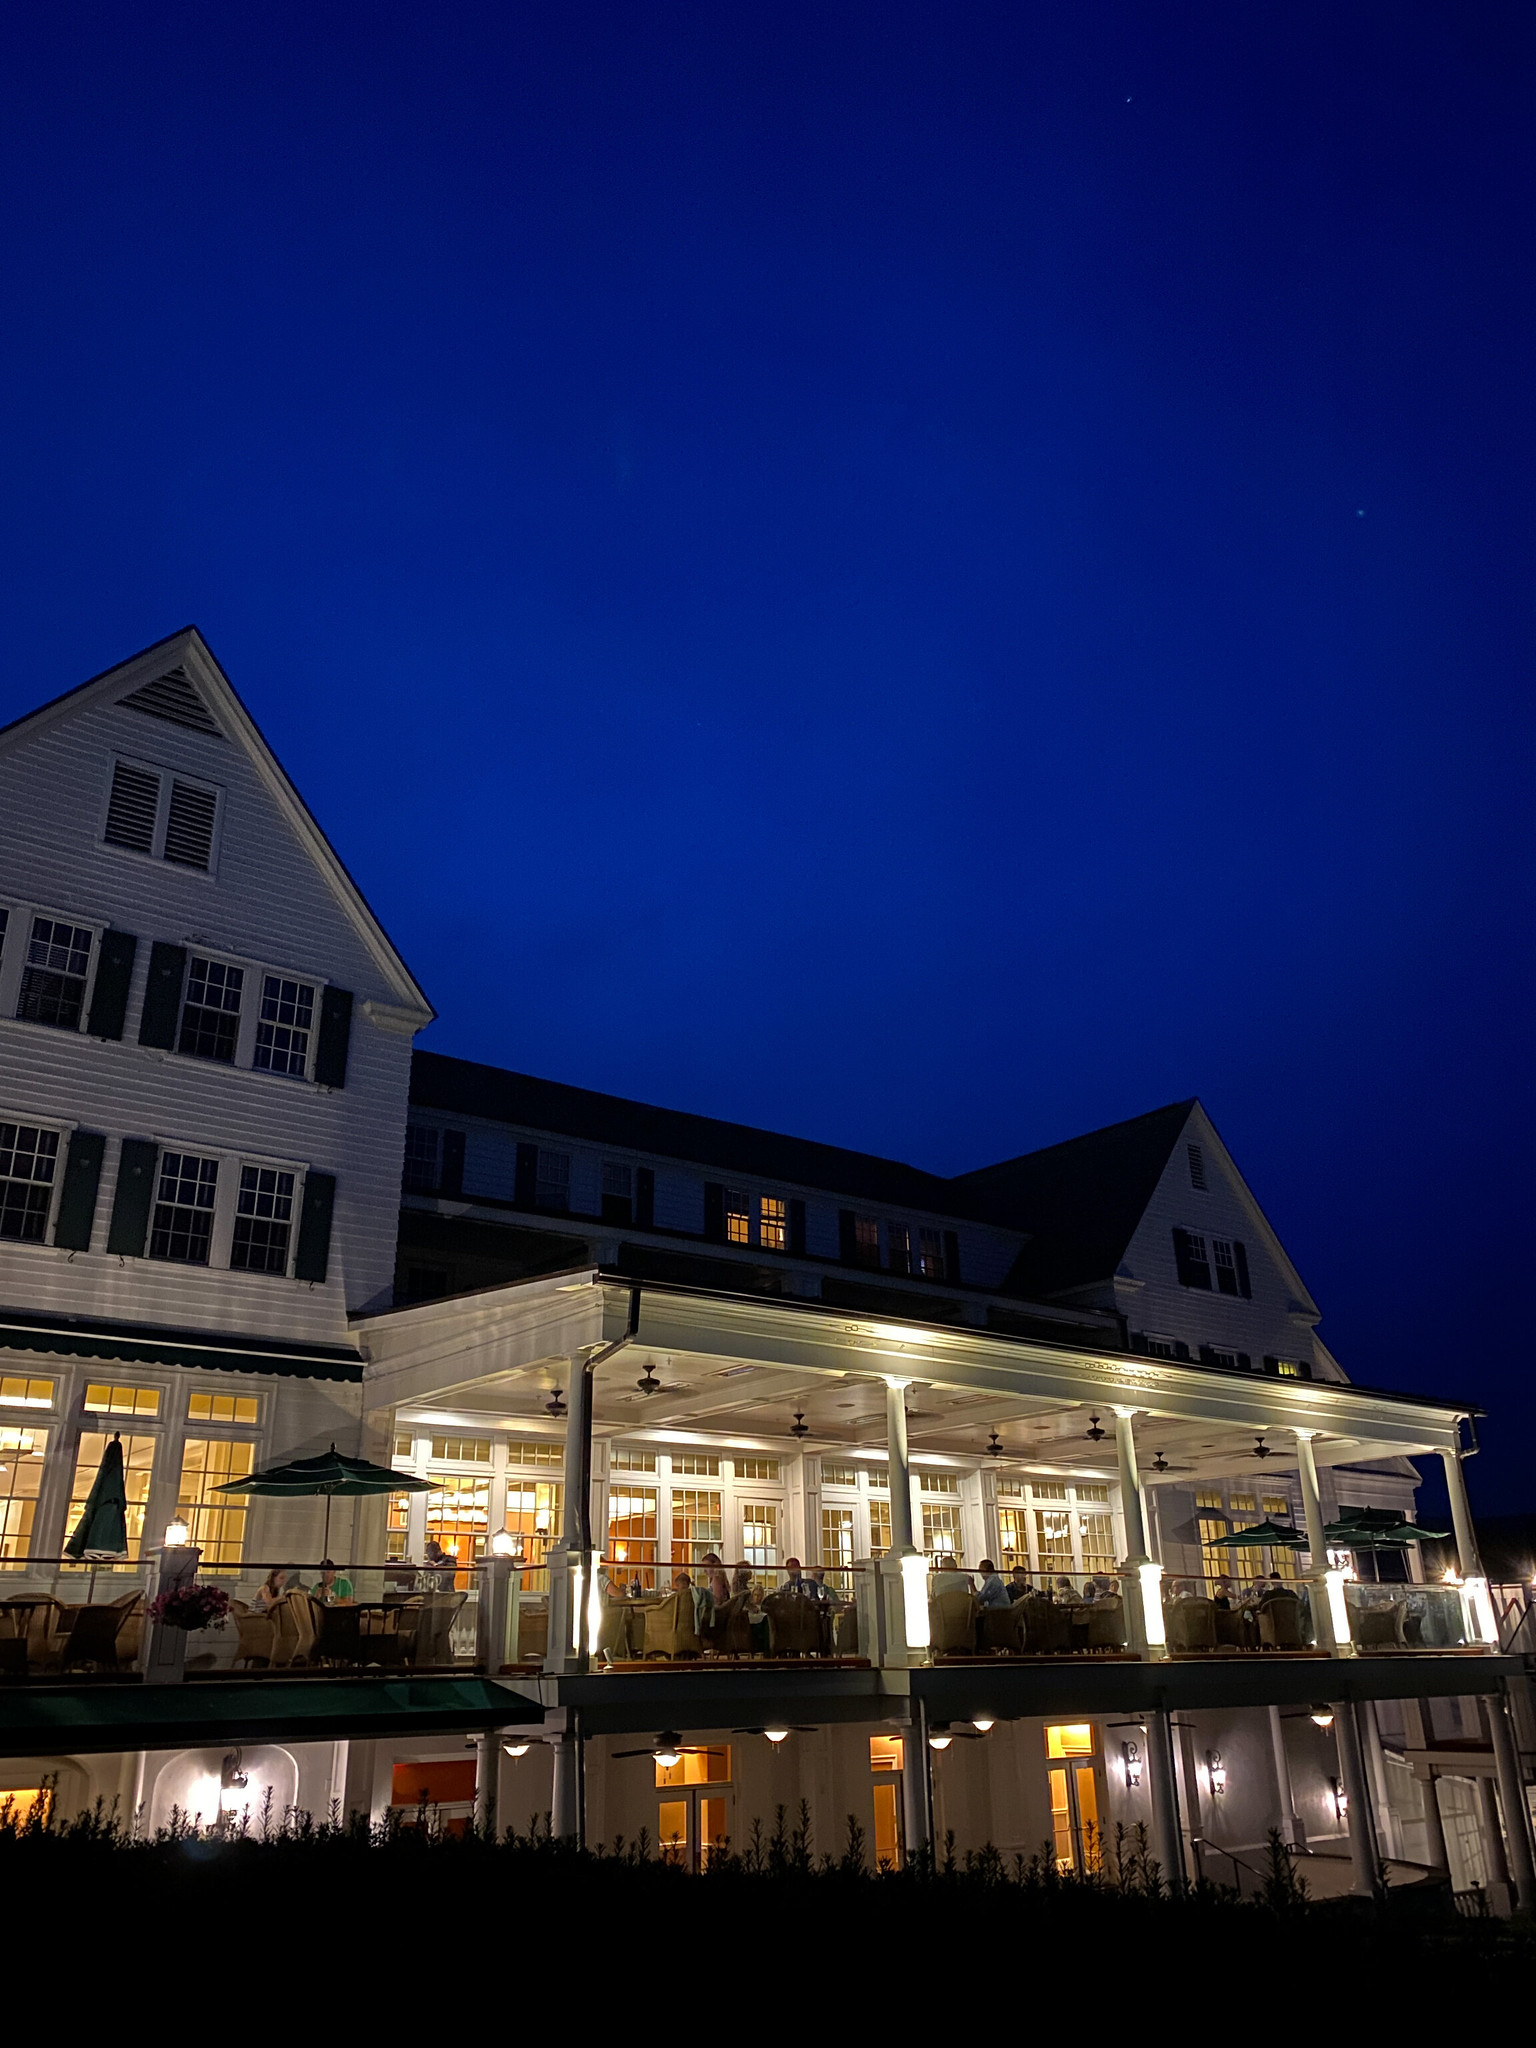 Places to Stay in Lake George